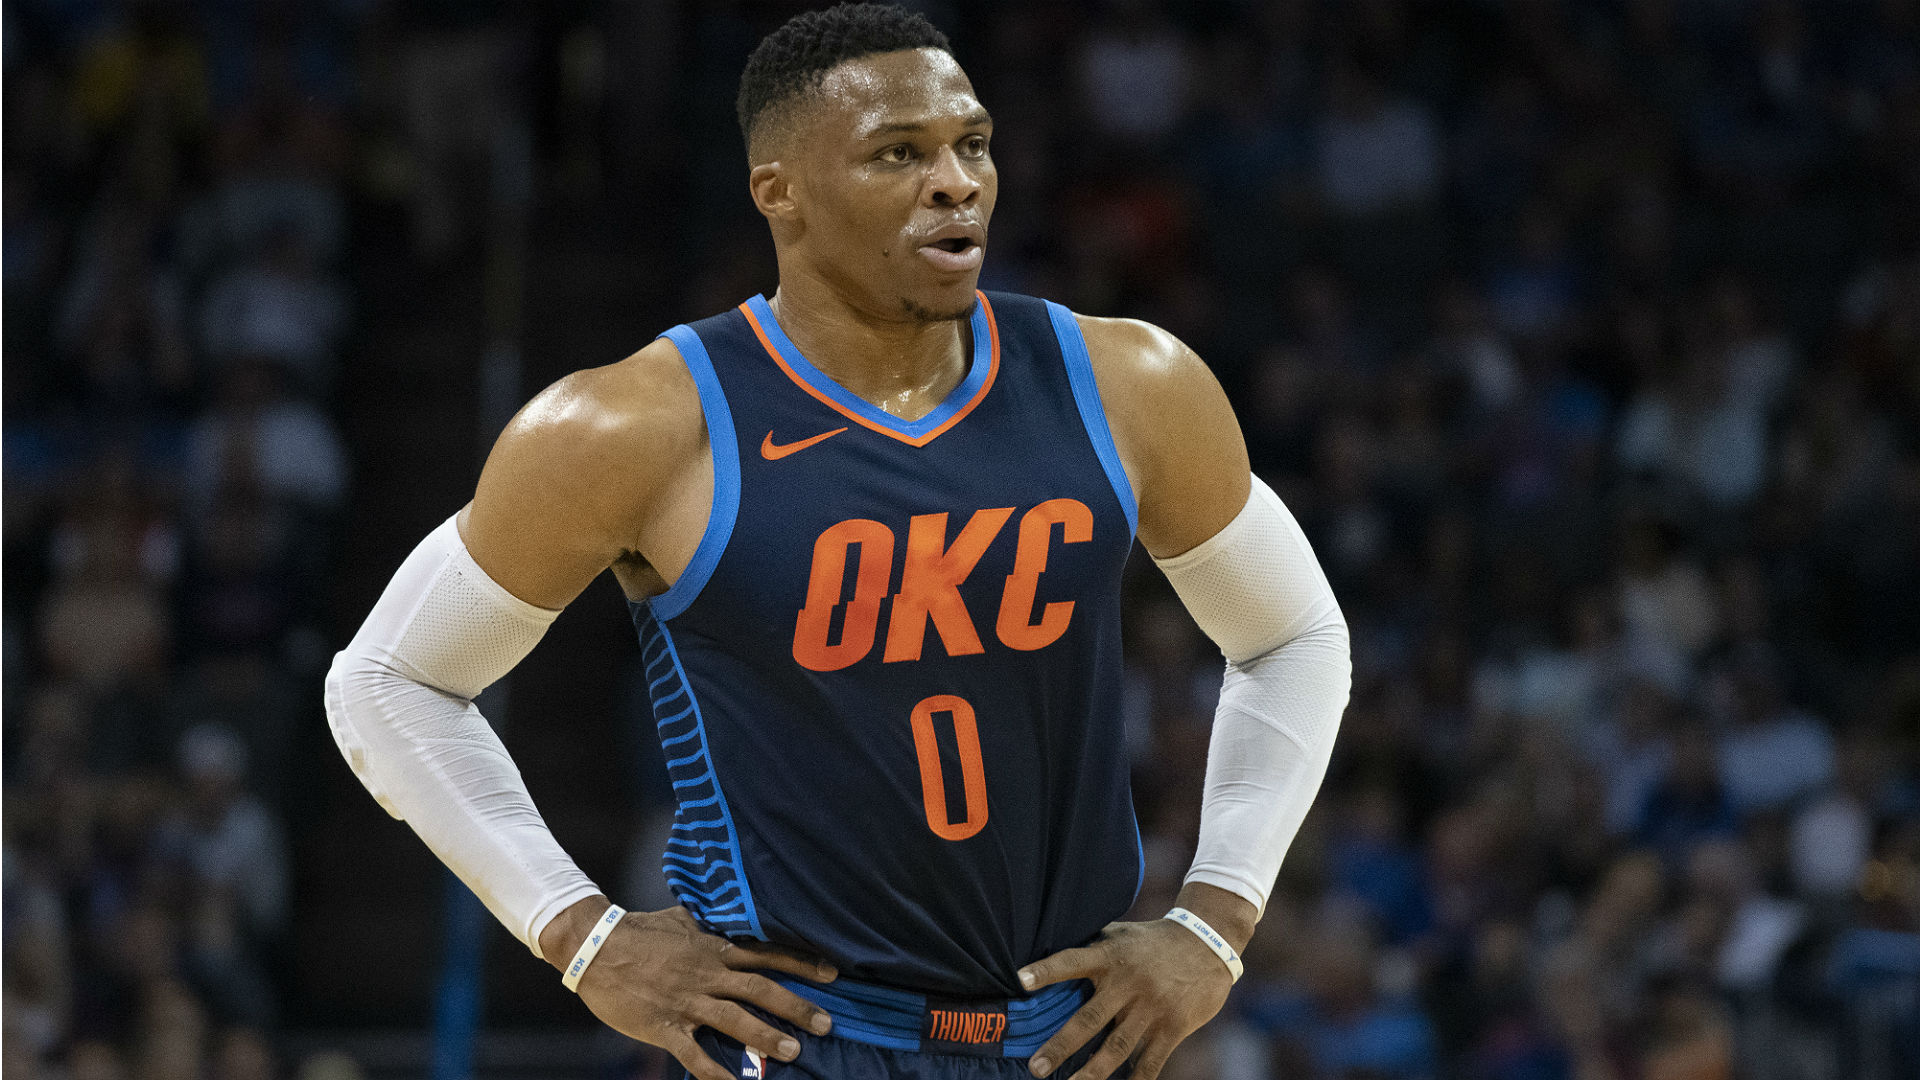 Westbrook hurts ankle, exits game